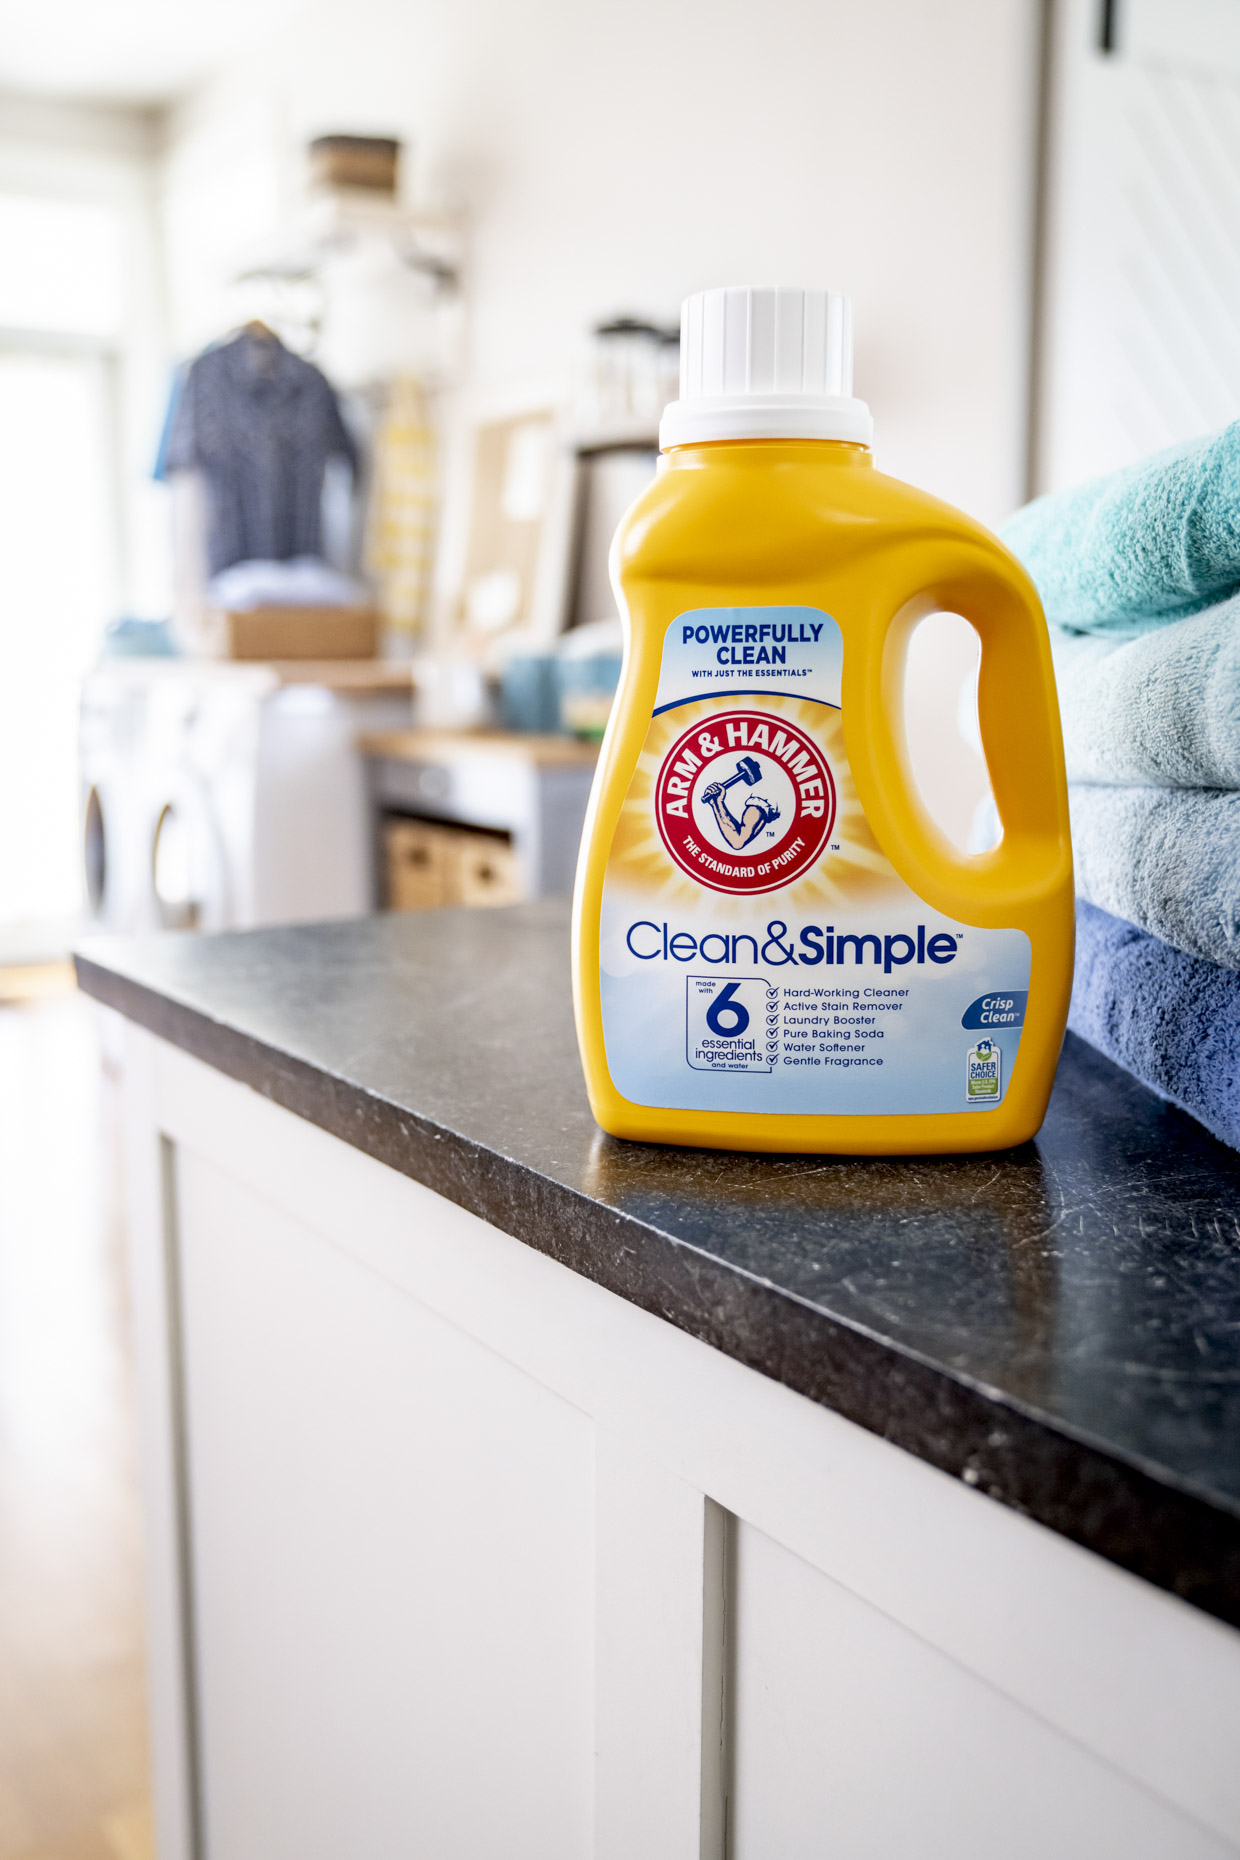 Bottle of Arm and Hammer laundry soap sitting on counter next to towels